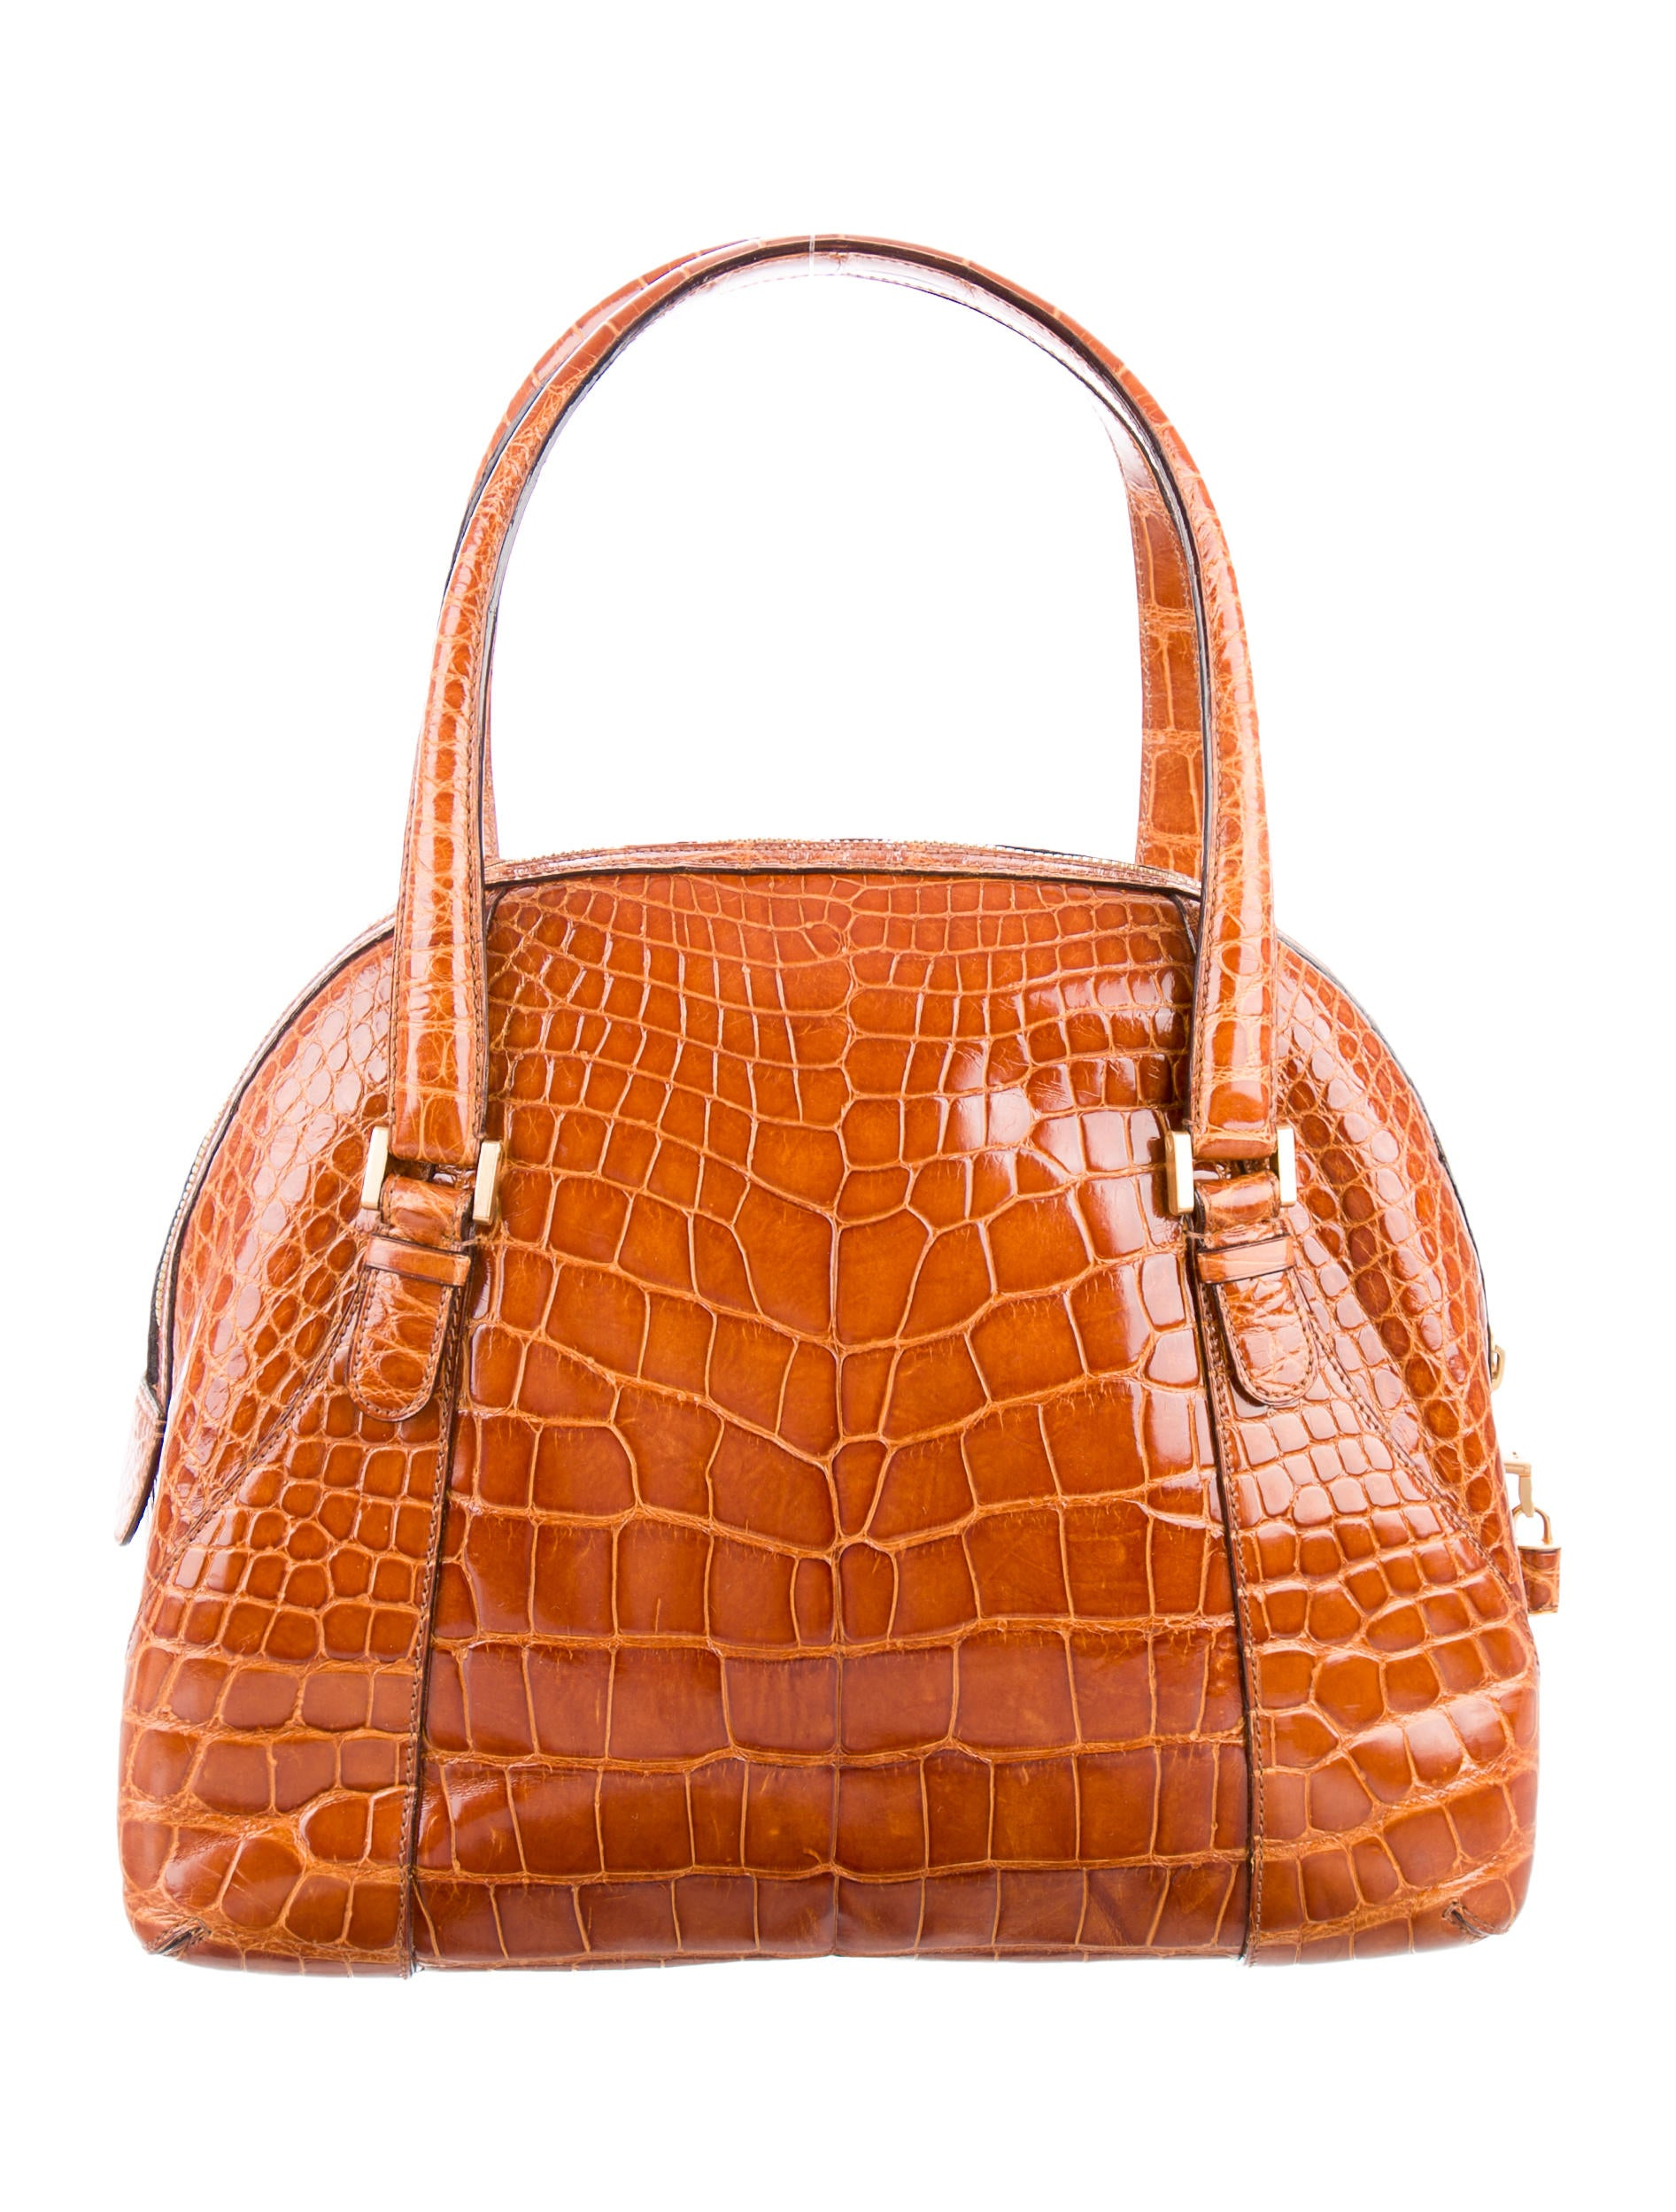 Valextra Alligator Shoulder Bag - Handbags